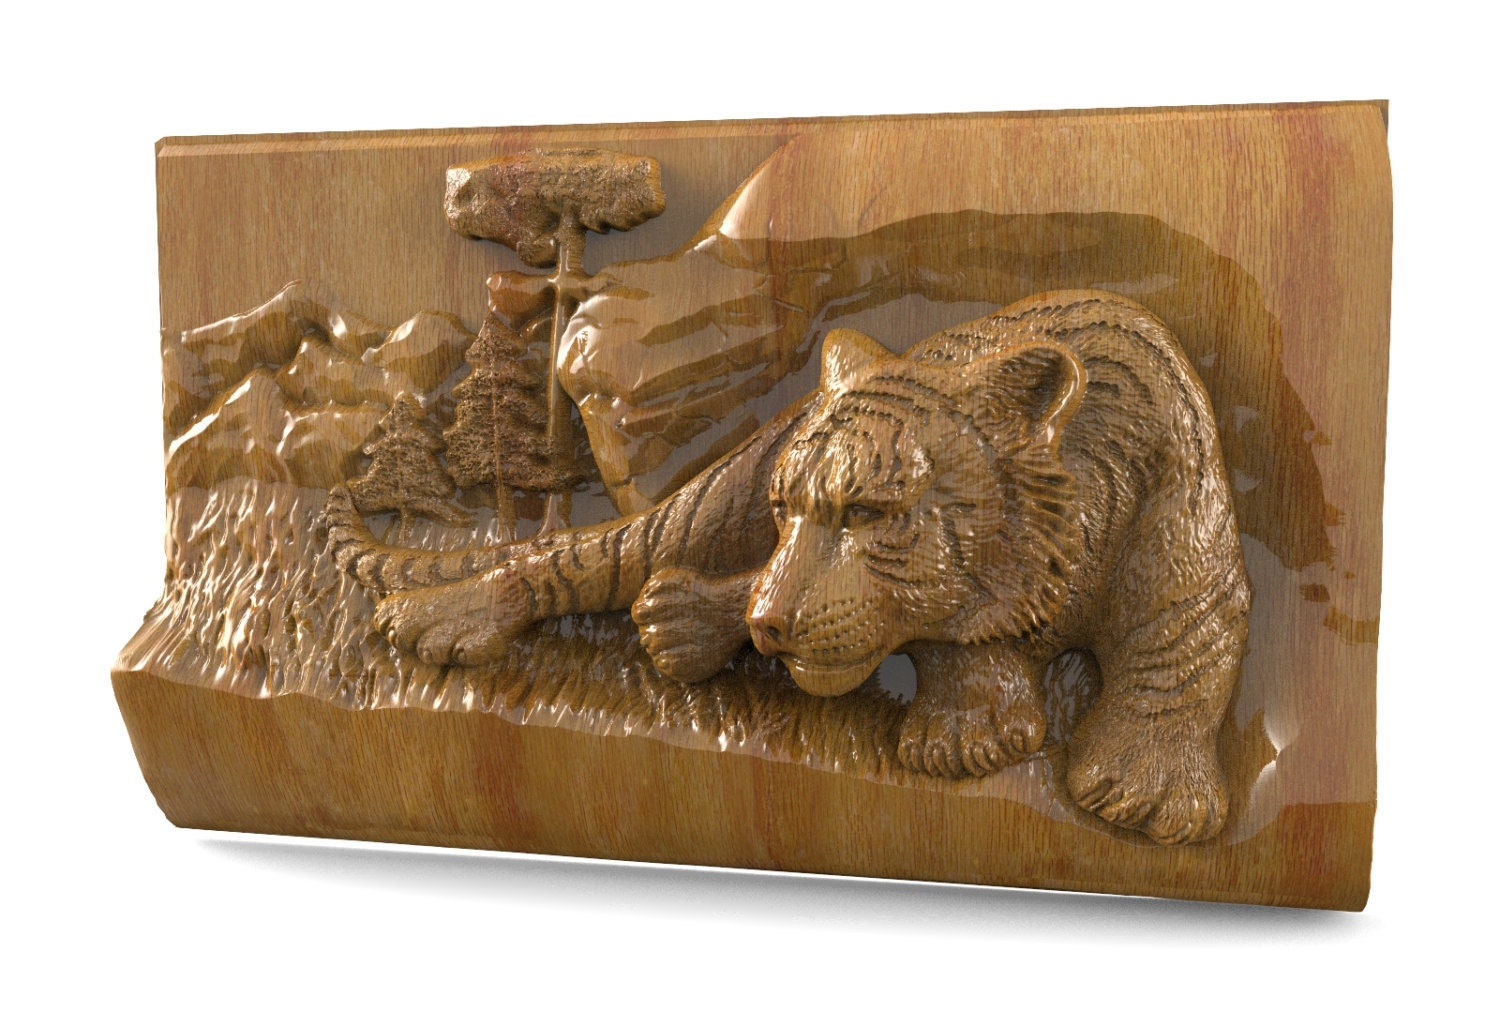 Stl file for cnc tiger router engraver carving